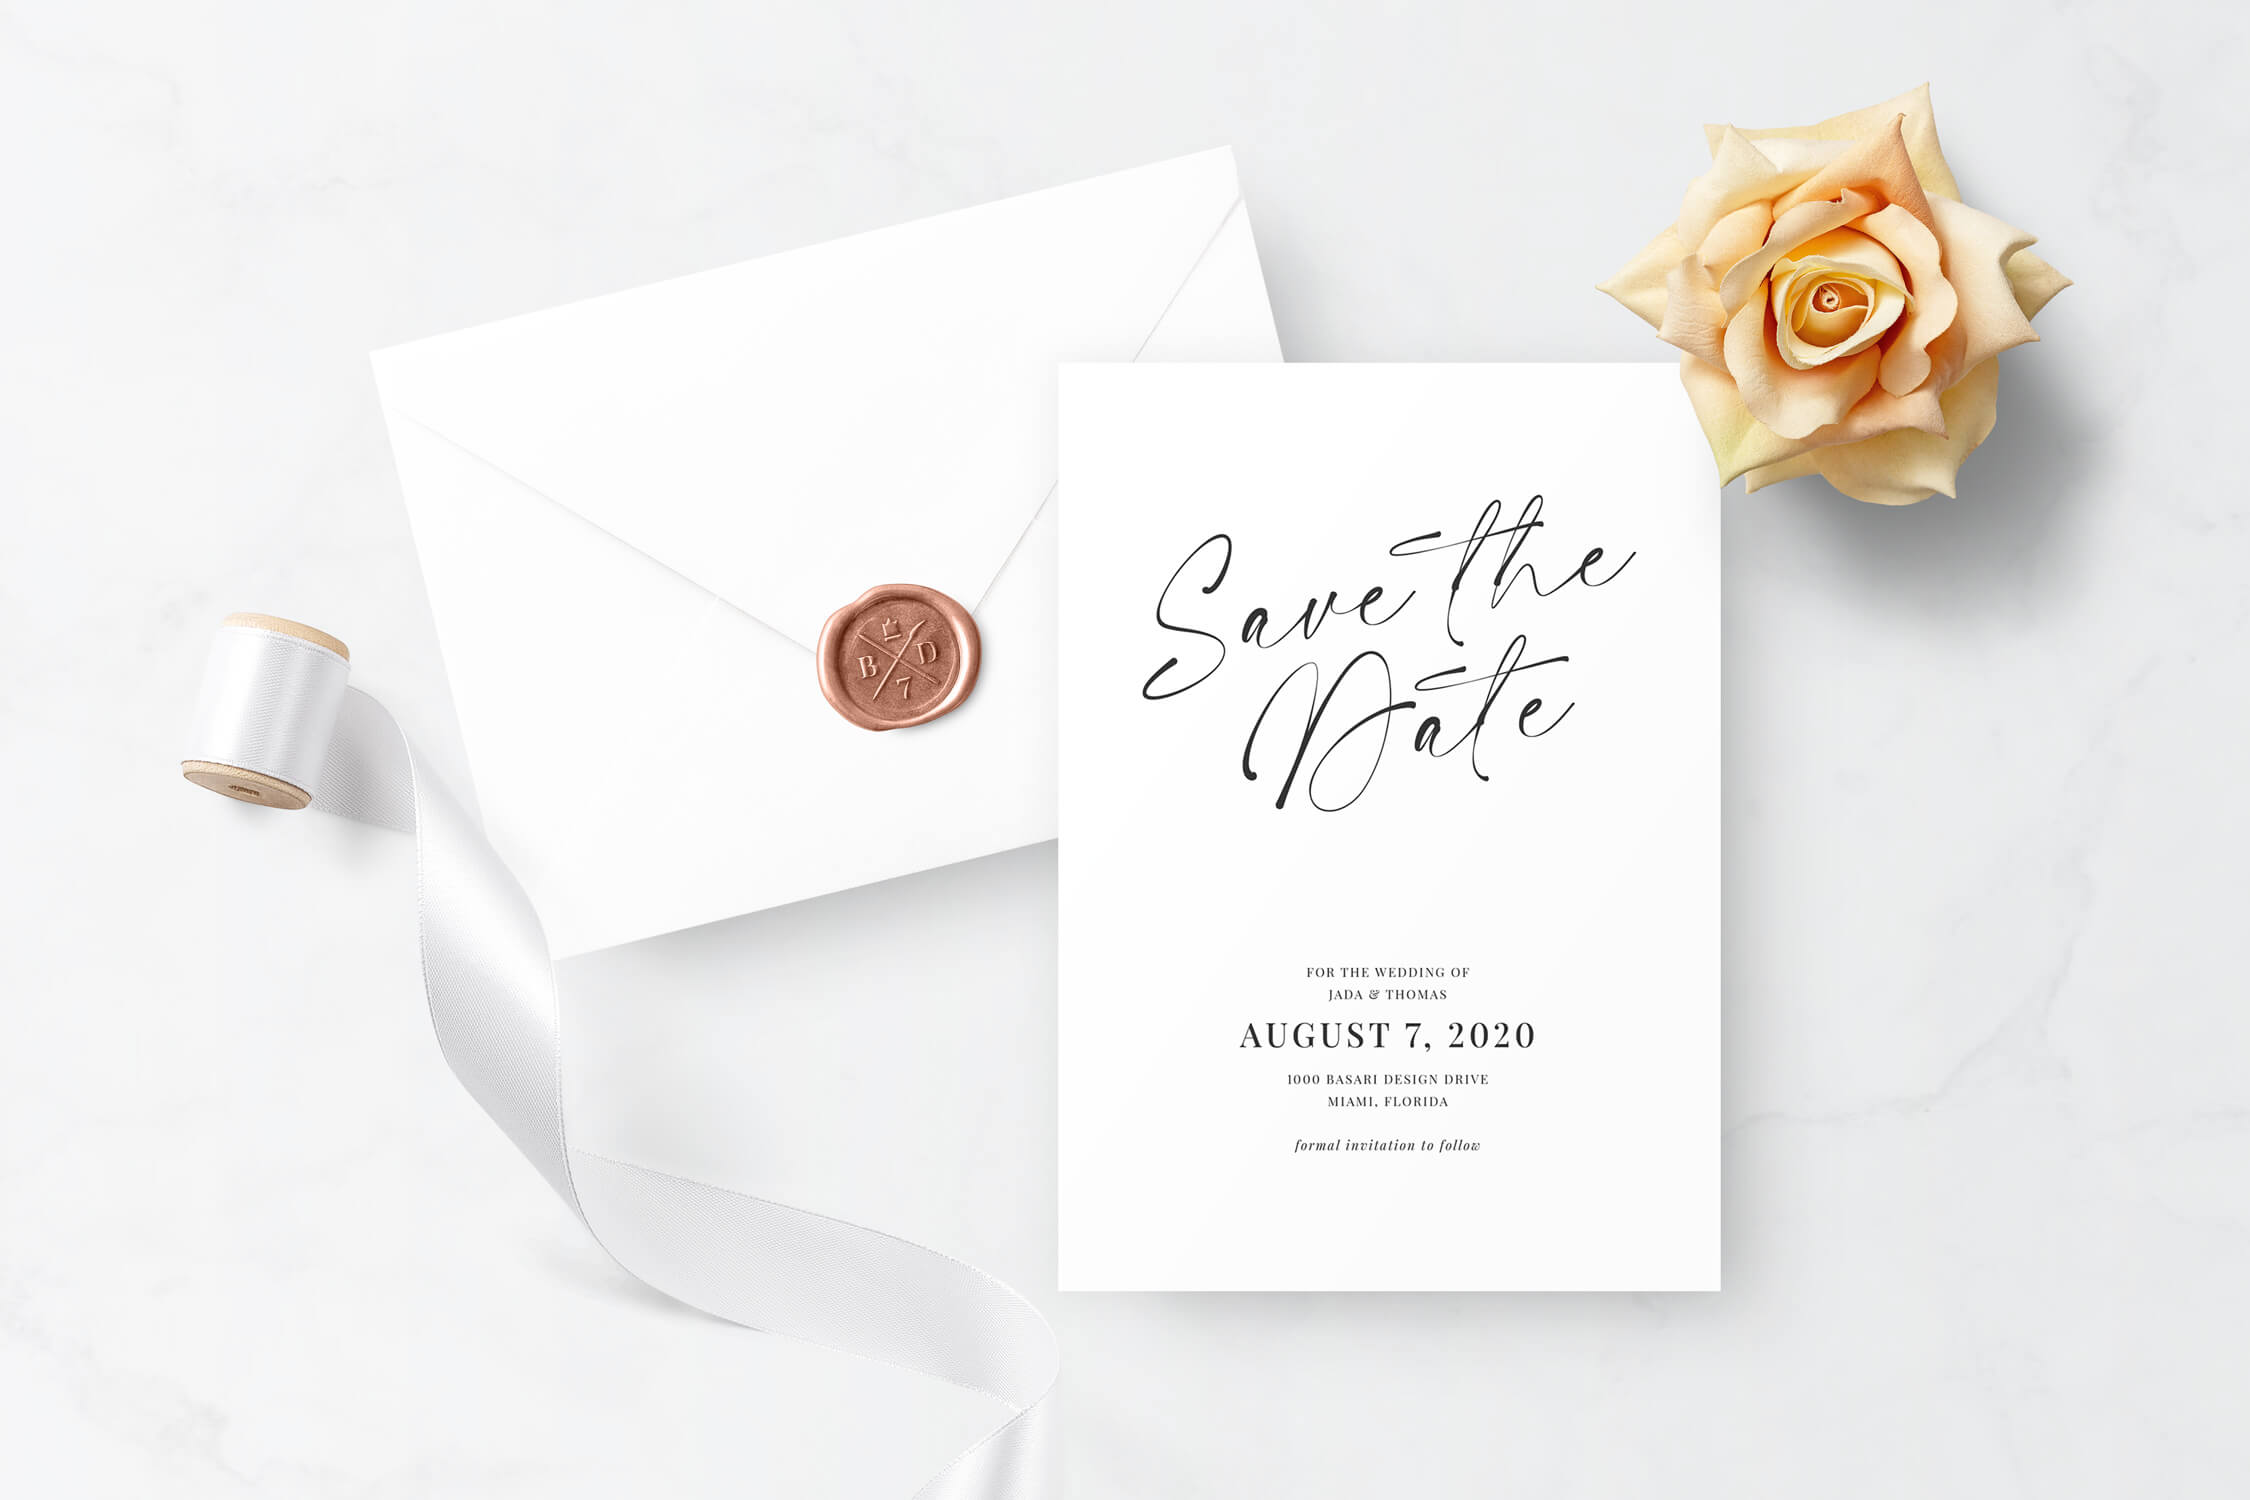 Basari Design - Save the date 001